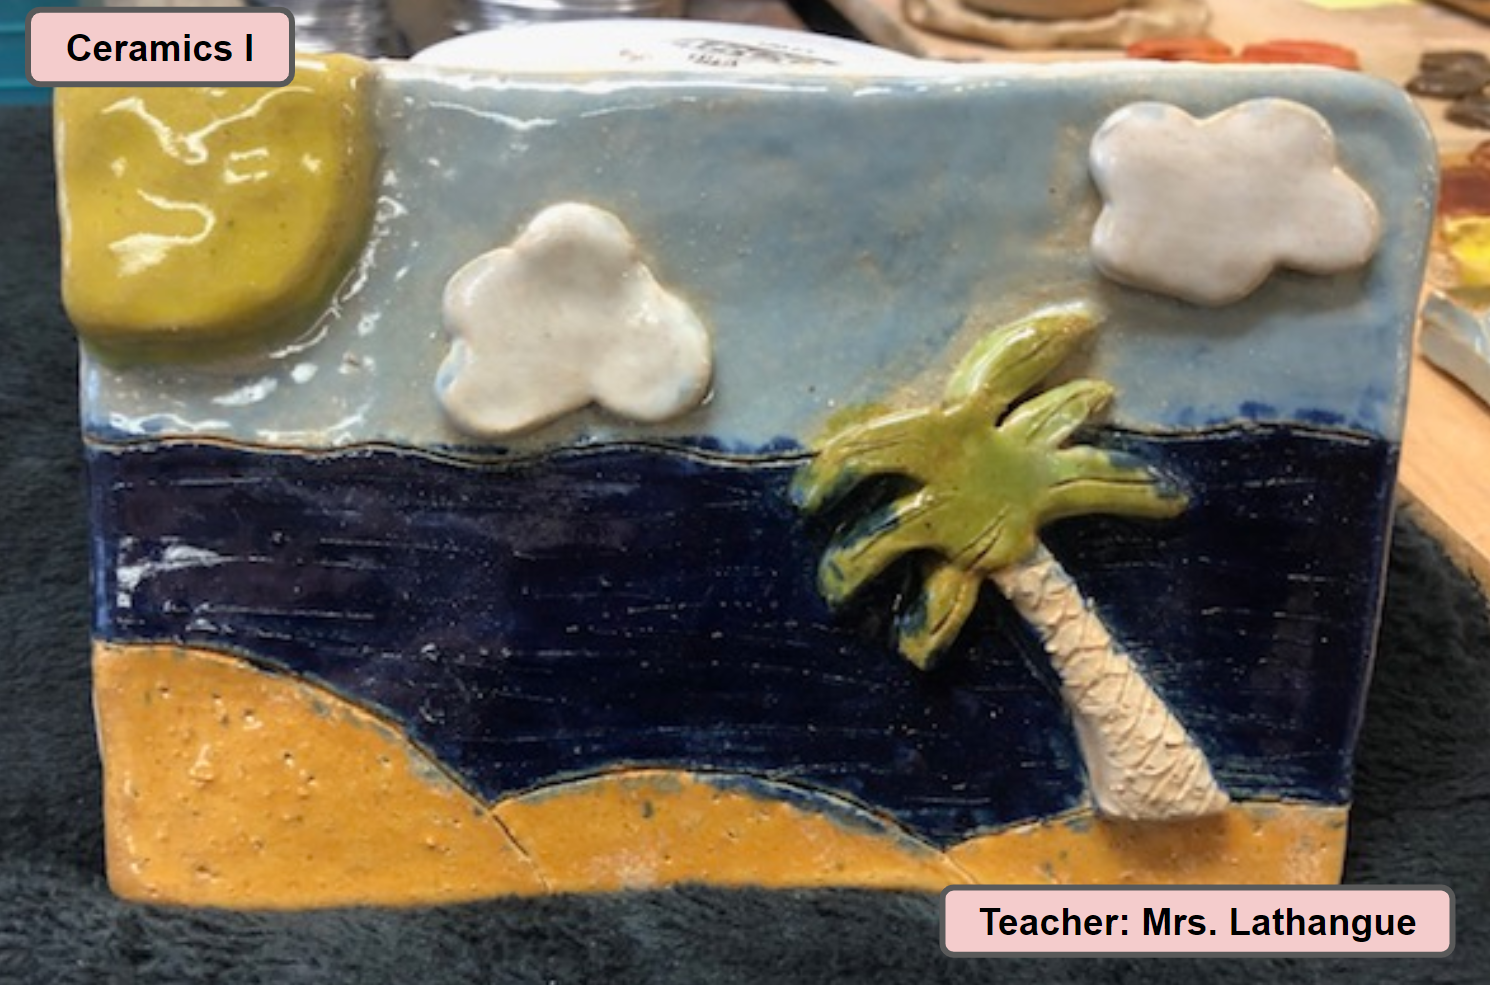 Ceramics One Art Class Project - Teacher Mrs. Lathangue - Tropical Seaside